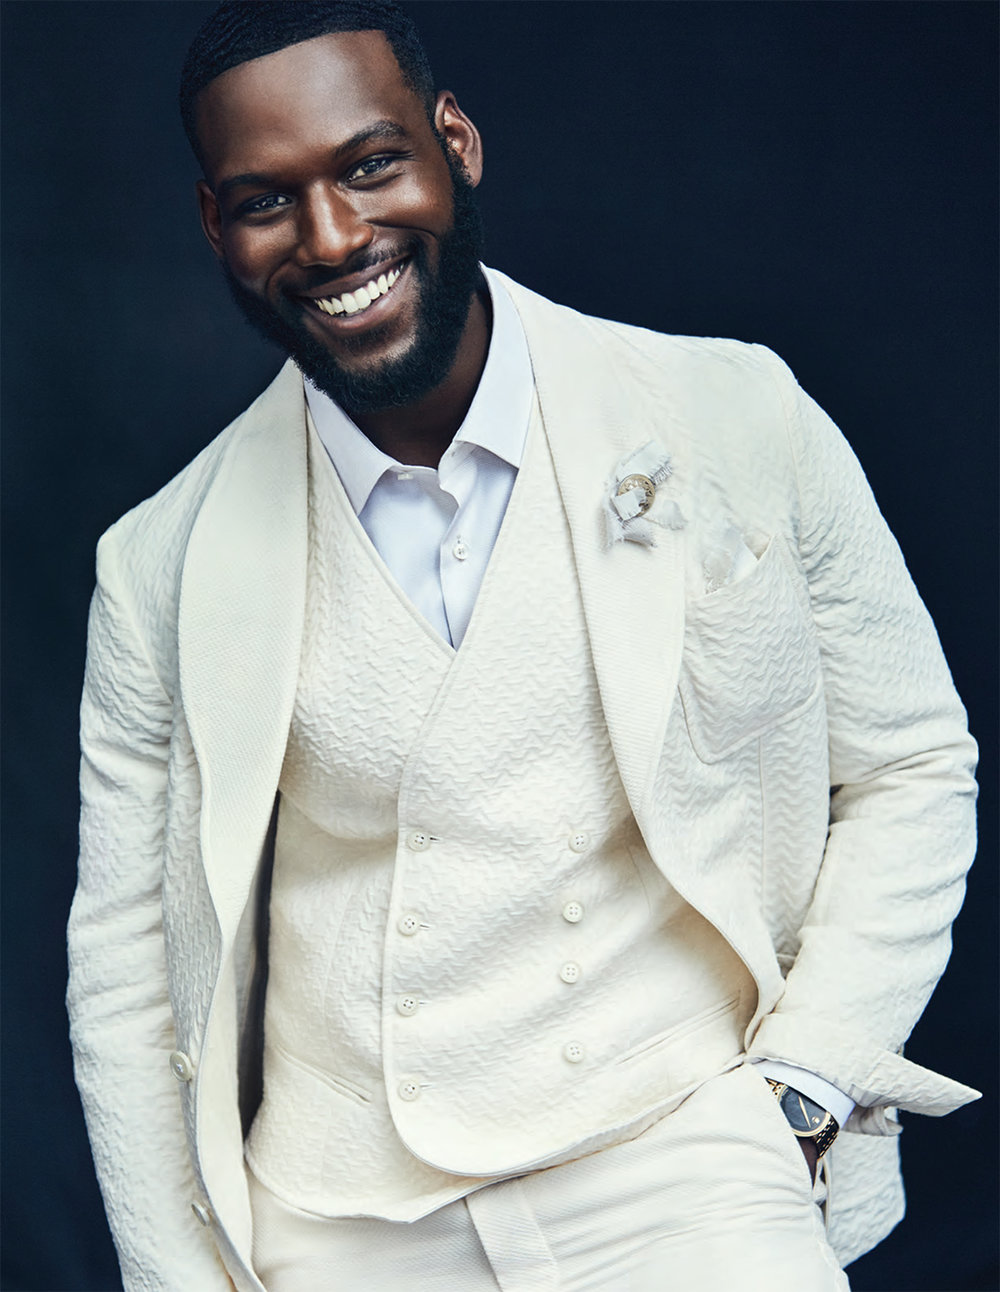 Kofie Siriboe: Photo Courtesy of Ebony Magazine's July/August Edition